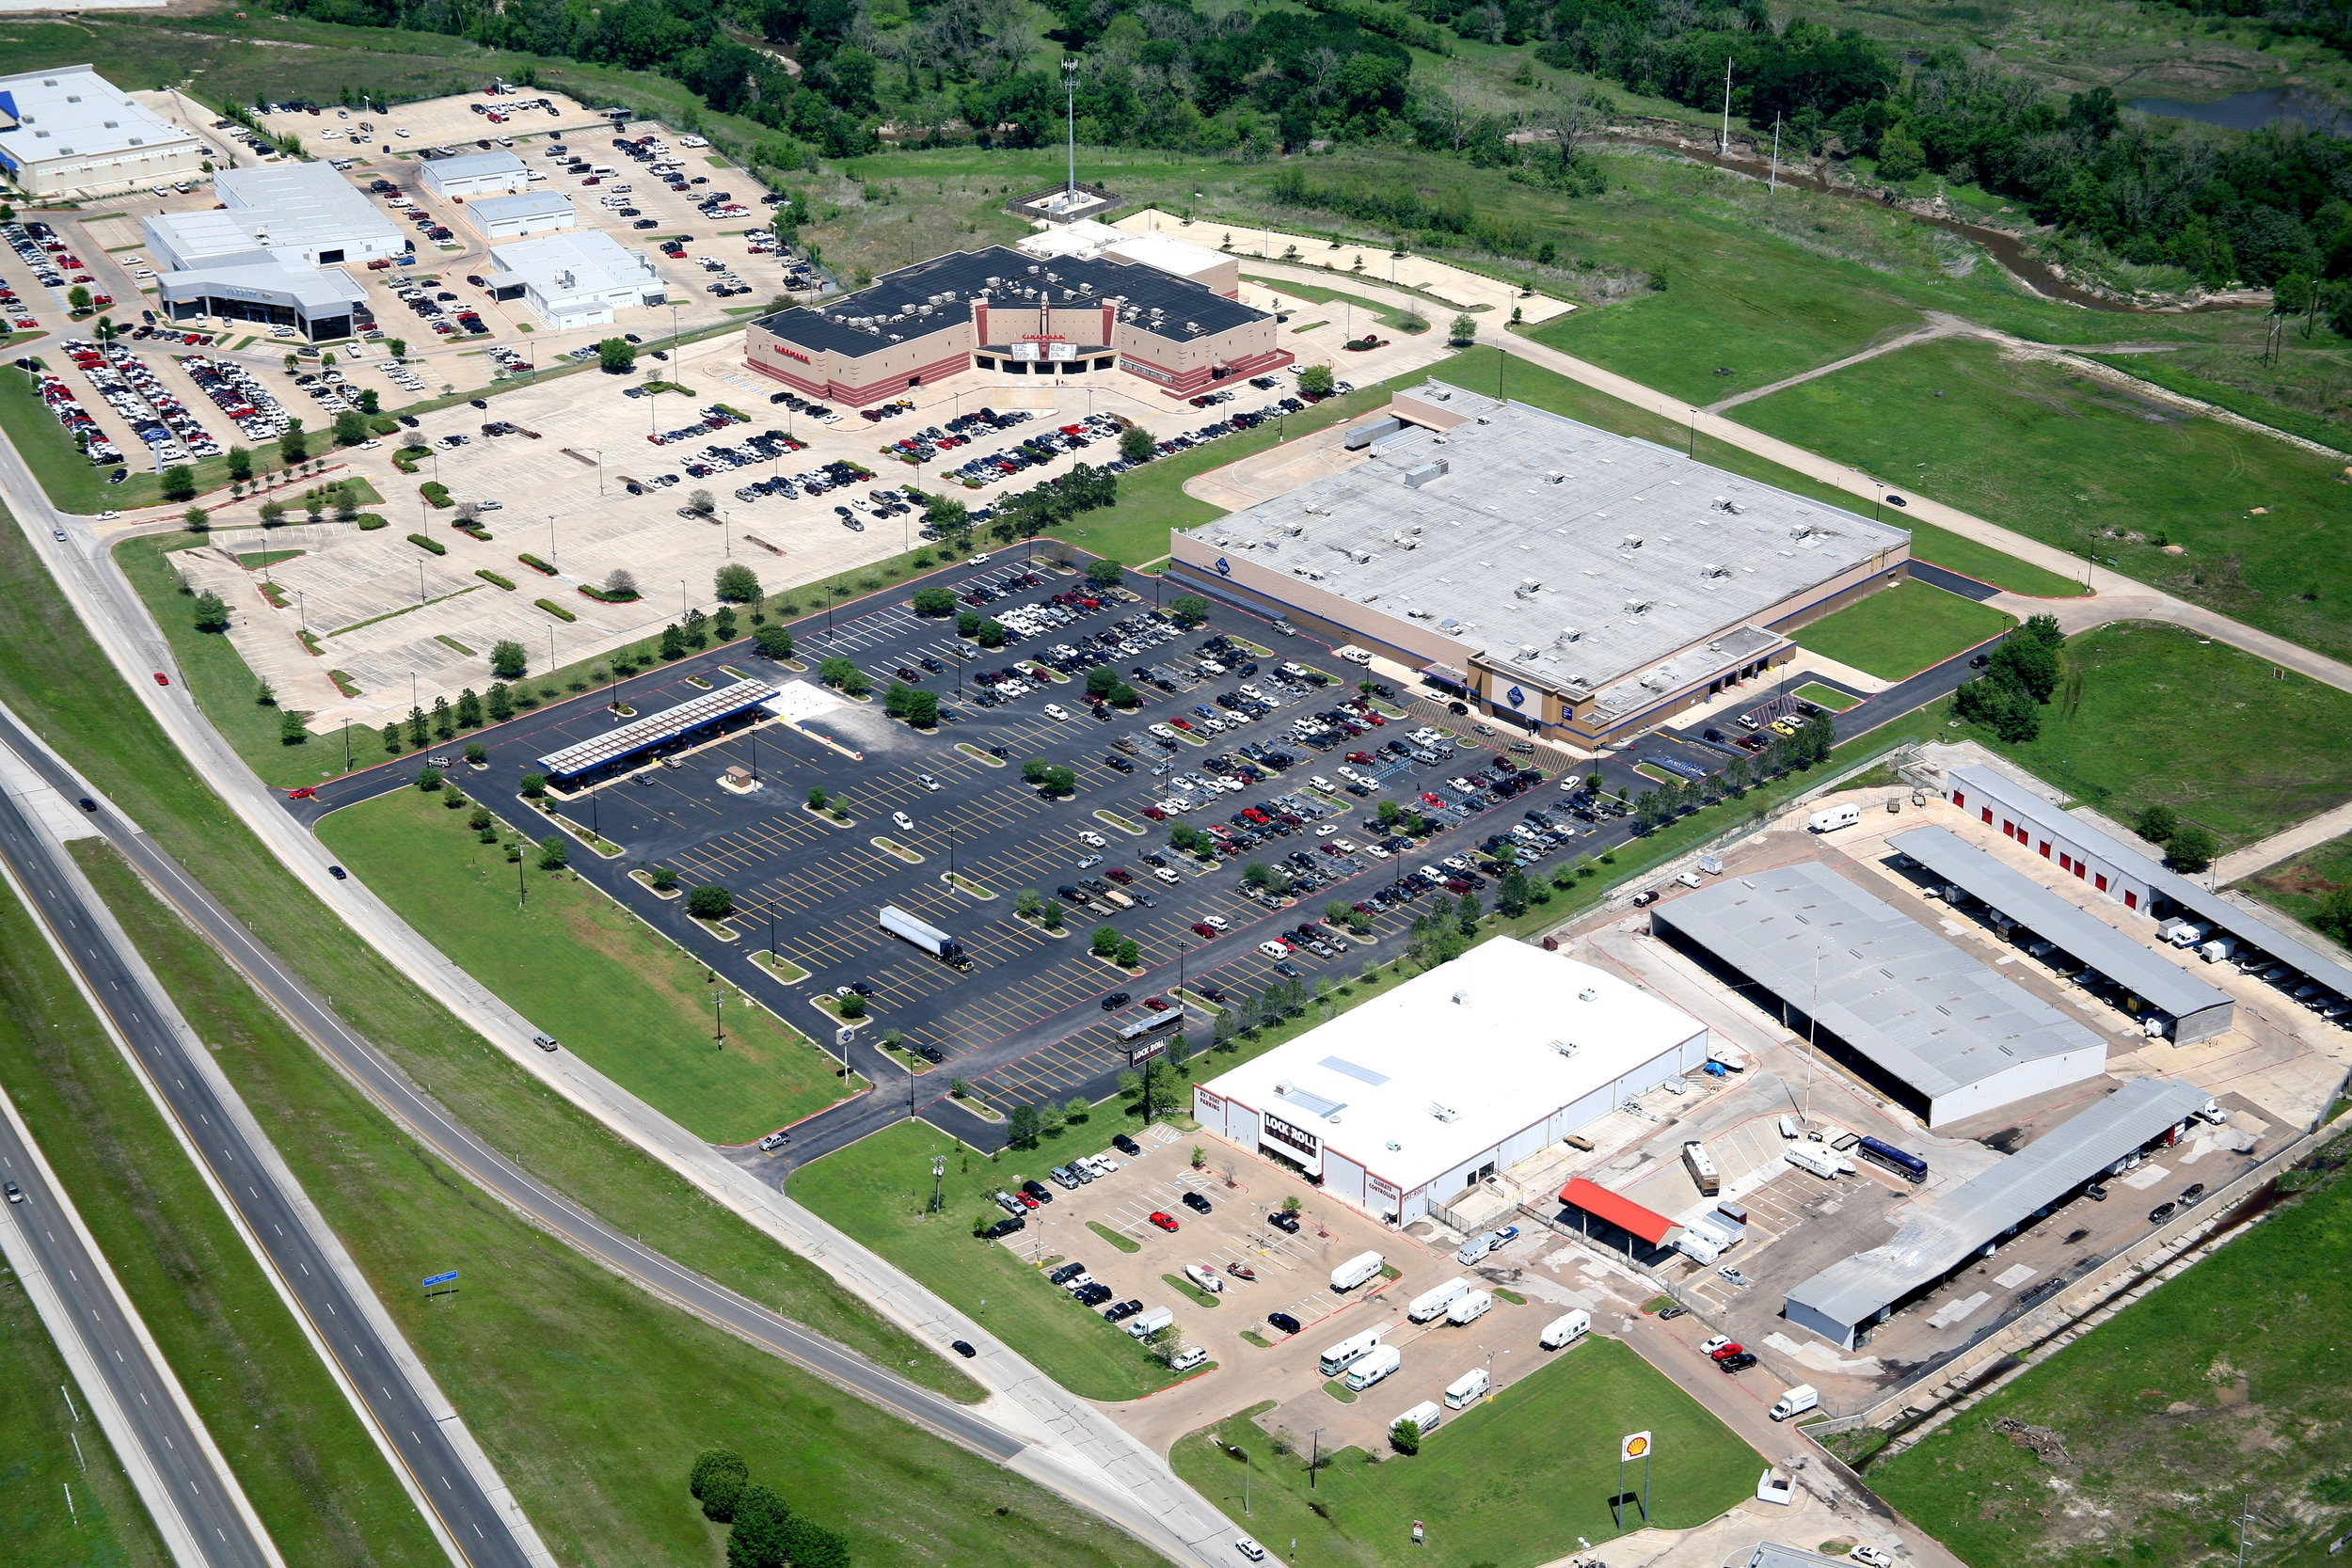 Sam's Club, College Station, Texas - College Station Aerial Photographer - Aerial Drone Image - Aerial Drone Video - Bryan, TX